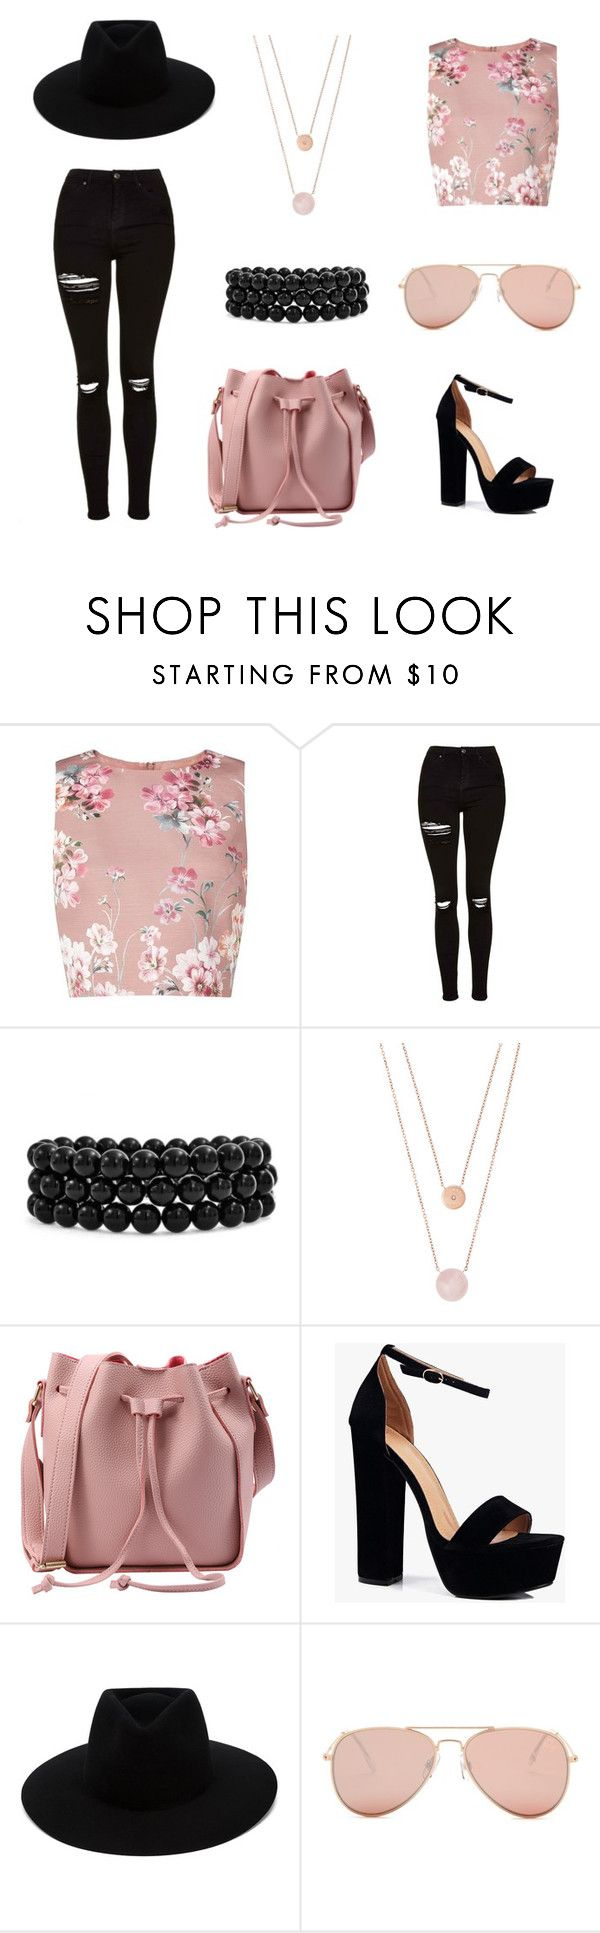 """""""We R Who we R."""" by rojoubdalia on Polyvore featuring Miss Selfridge, Topshop, Bling Jewelry, Michael Kors, Boohoo, rag & bone and Betsey Johnson"""